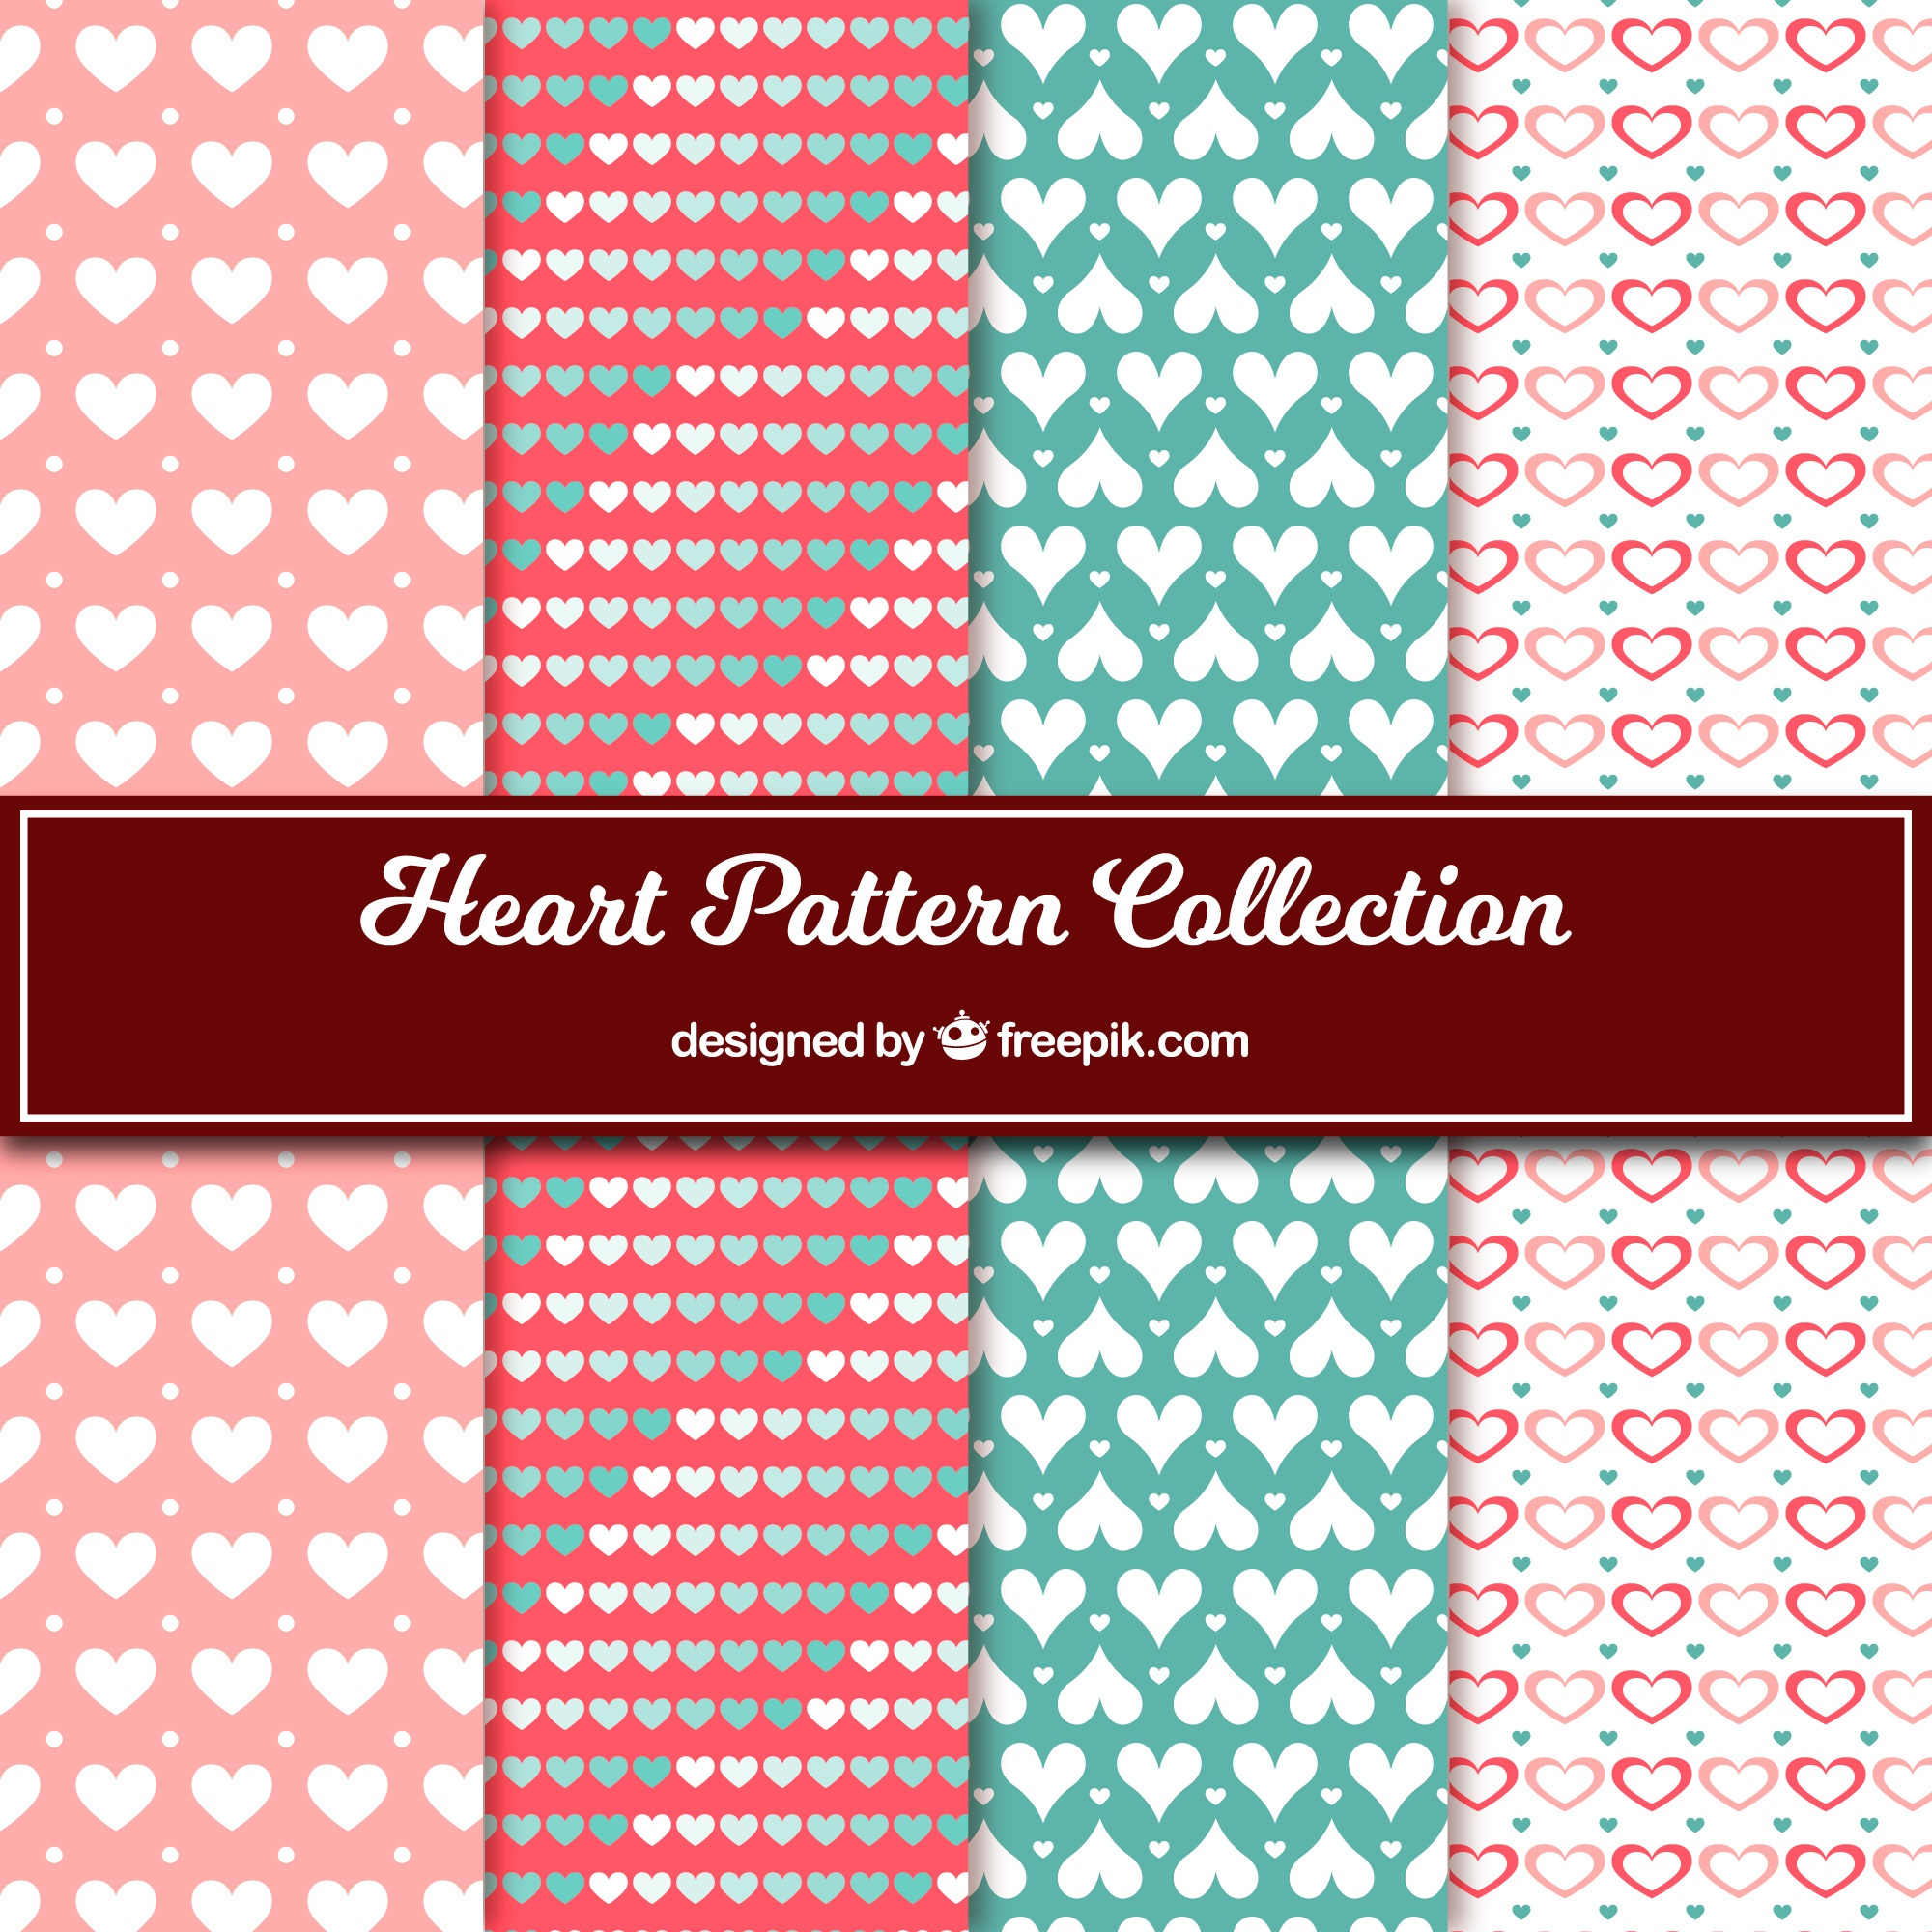 Collection of decorative hearts patterns